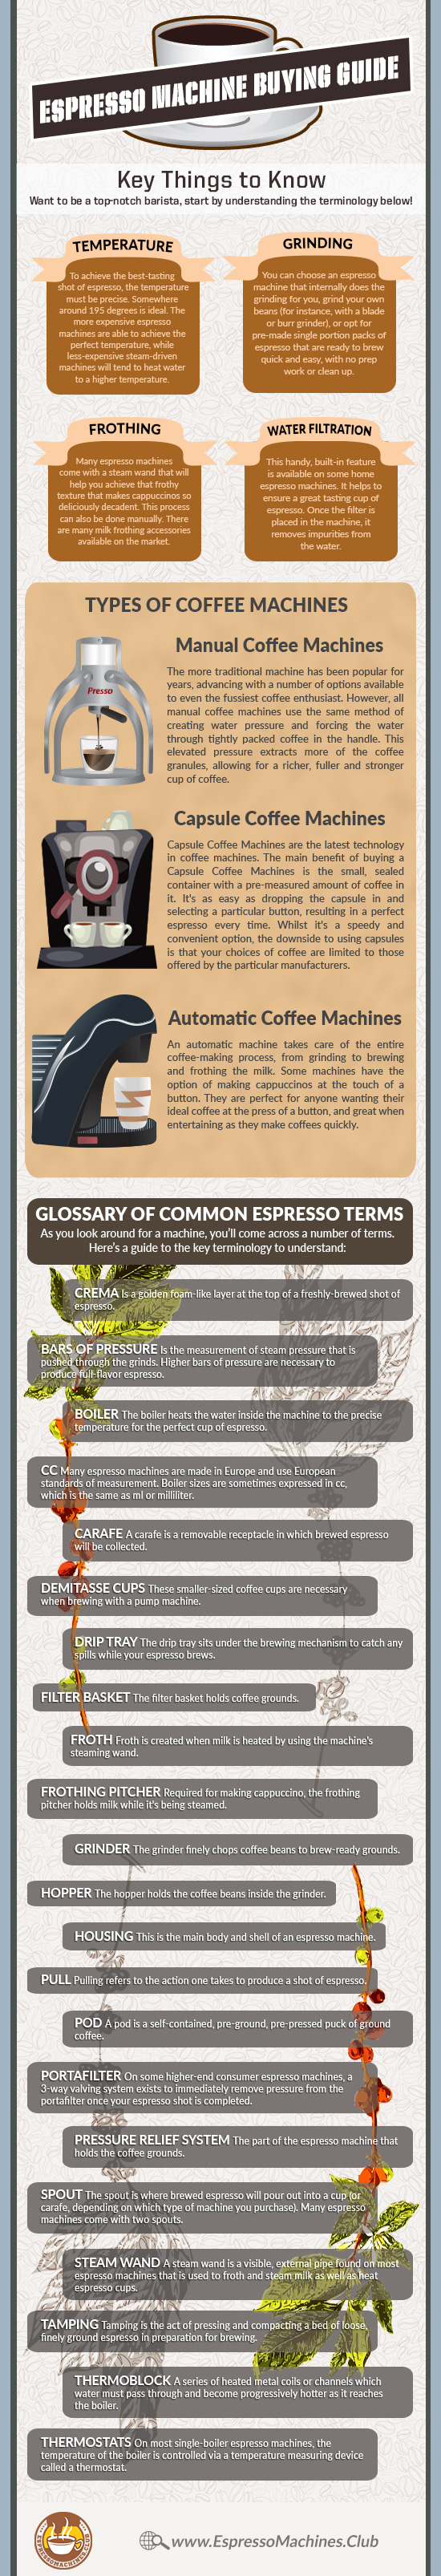 Espresso-Machine-Buying-Guide-infographic-lkrllc